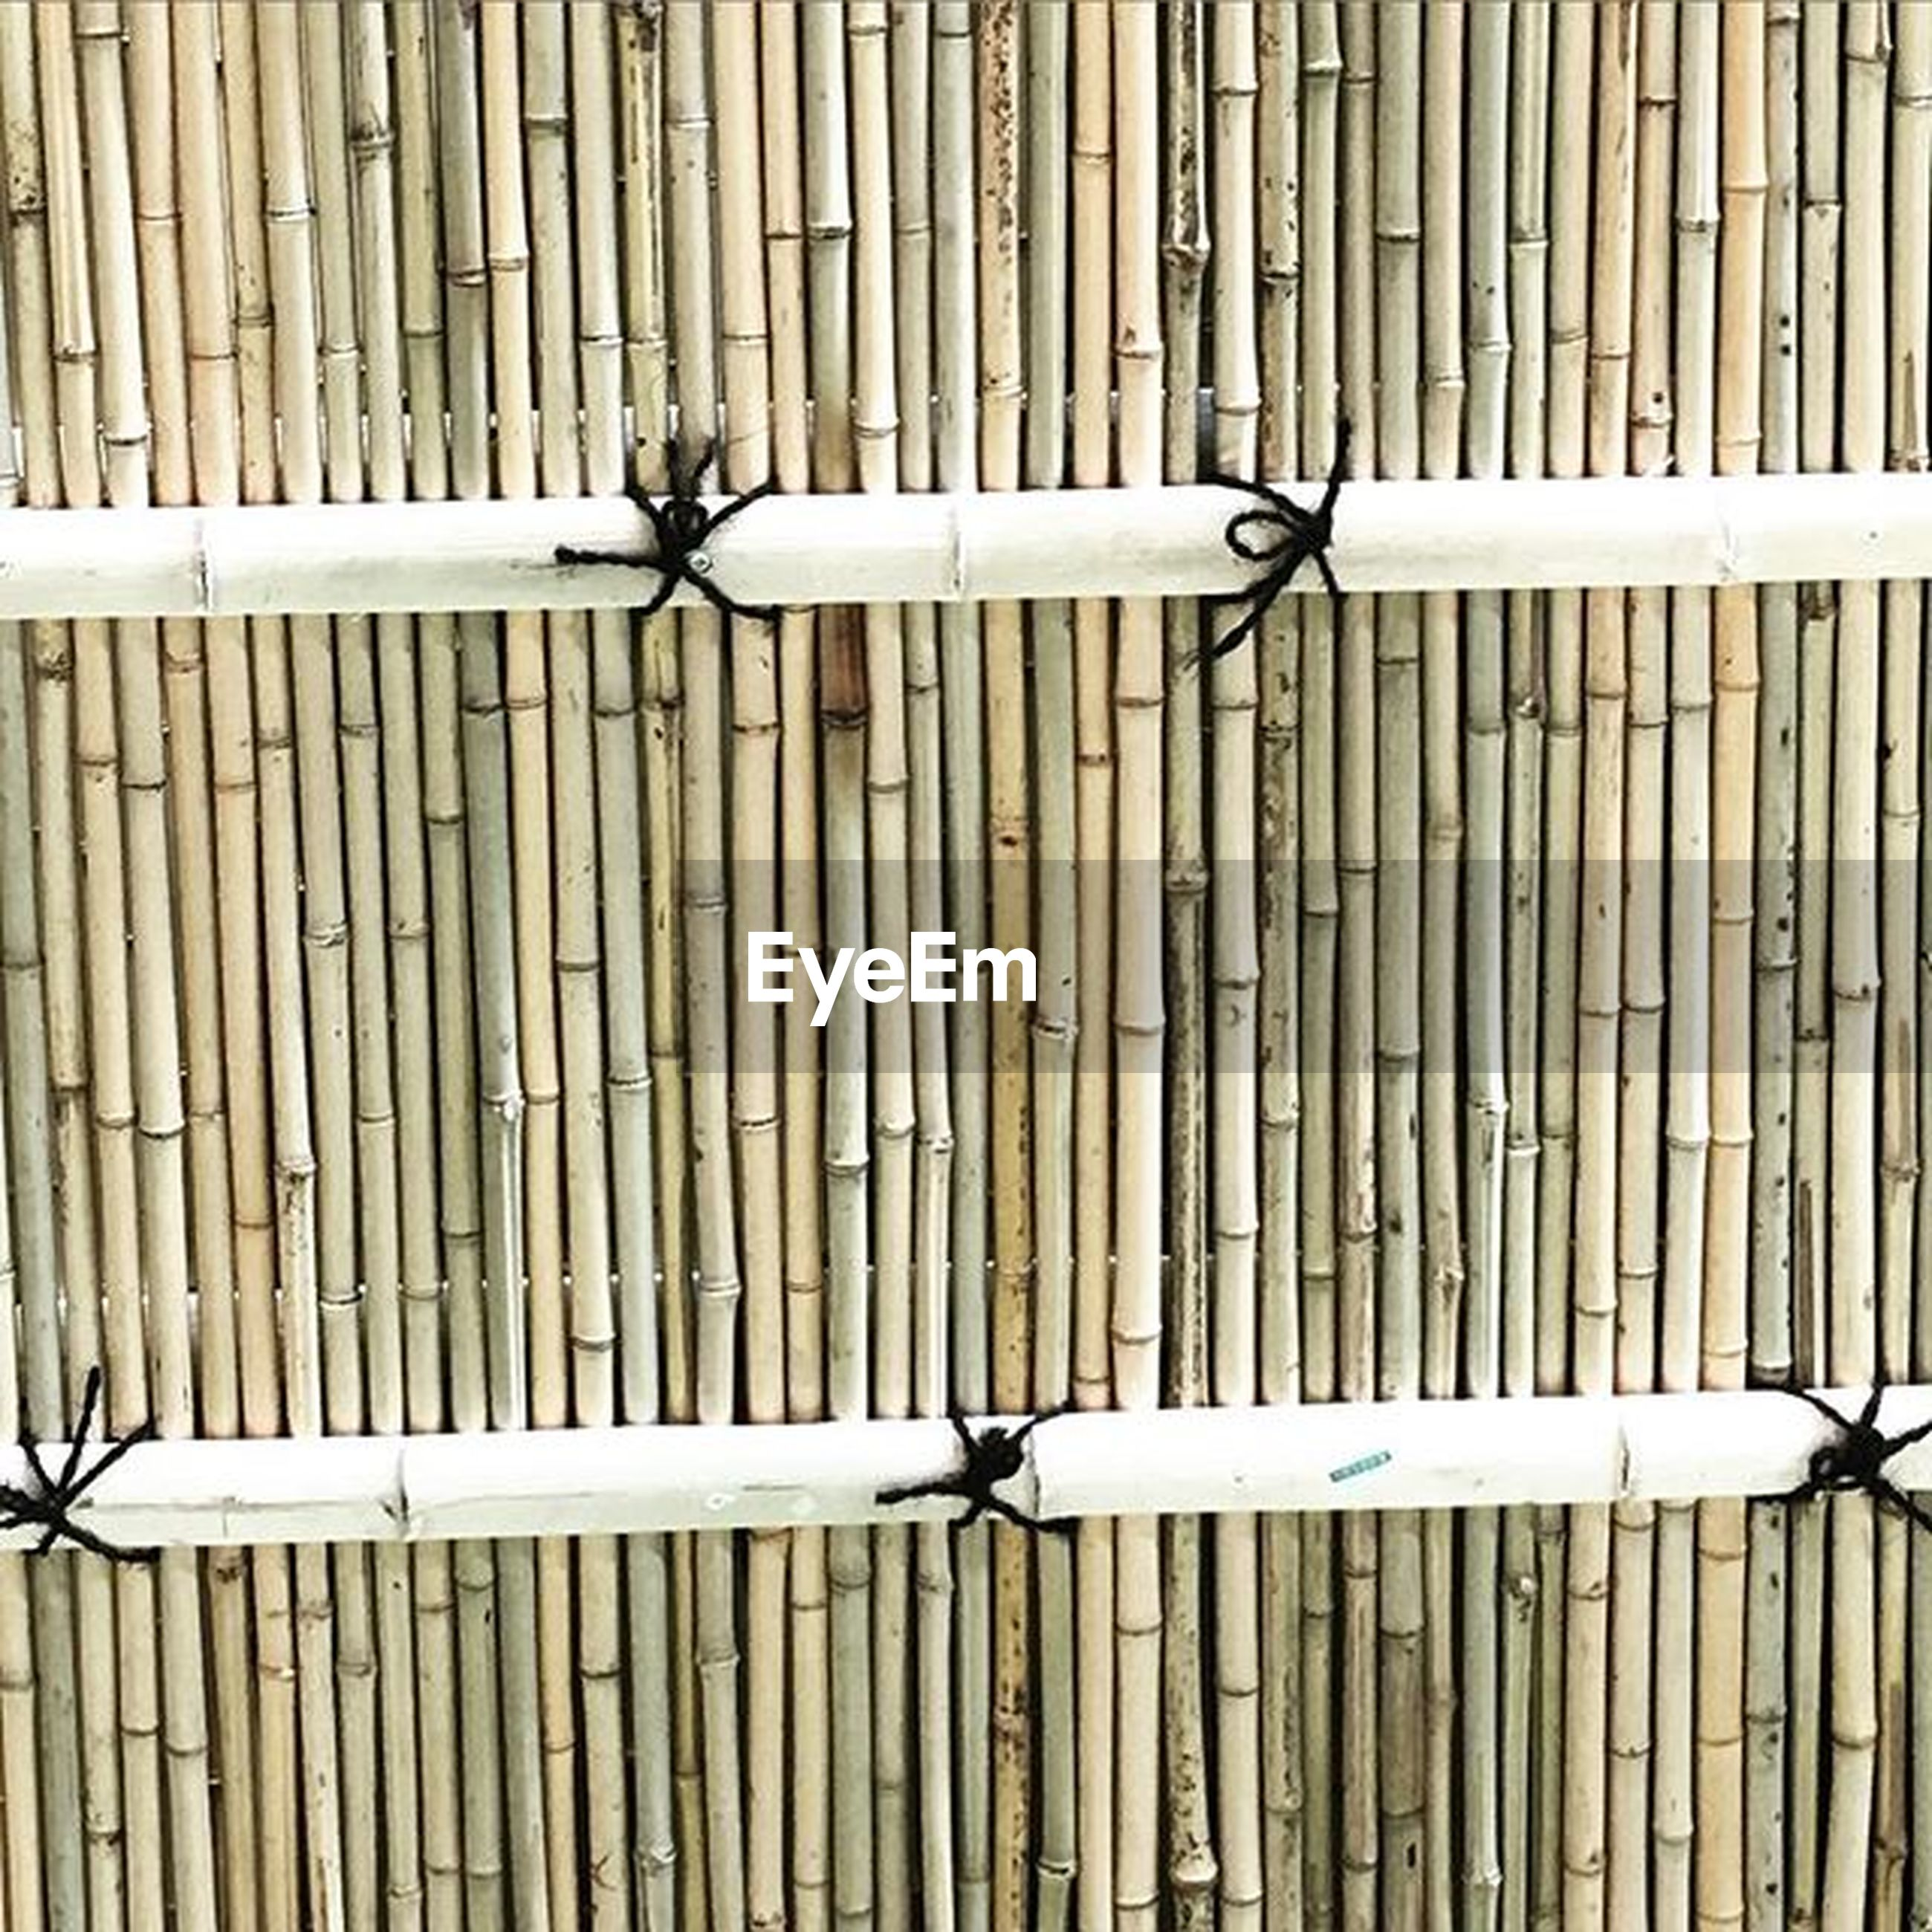 metal, protection, fence, safety, security, full length, railing, day, outdoors, pattern, childhood, metallic, wood - material, full frame, lifestyles, rope, bird, in a row